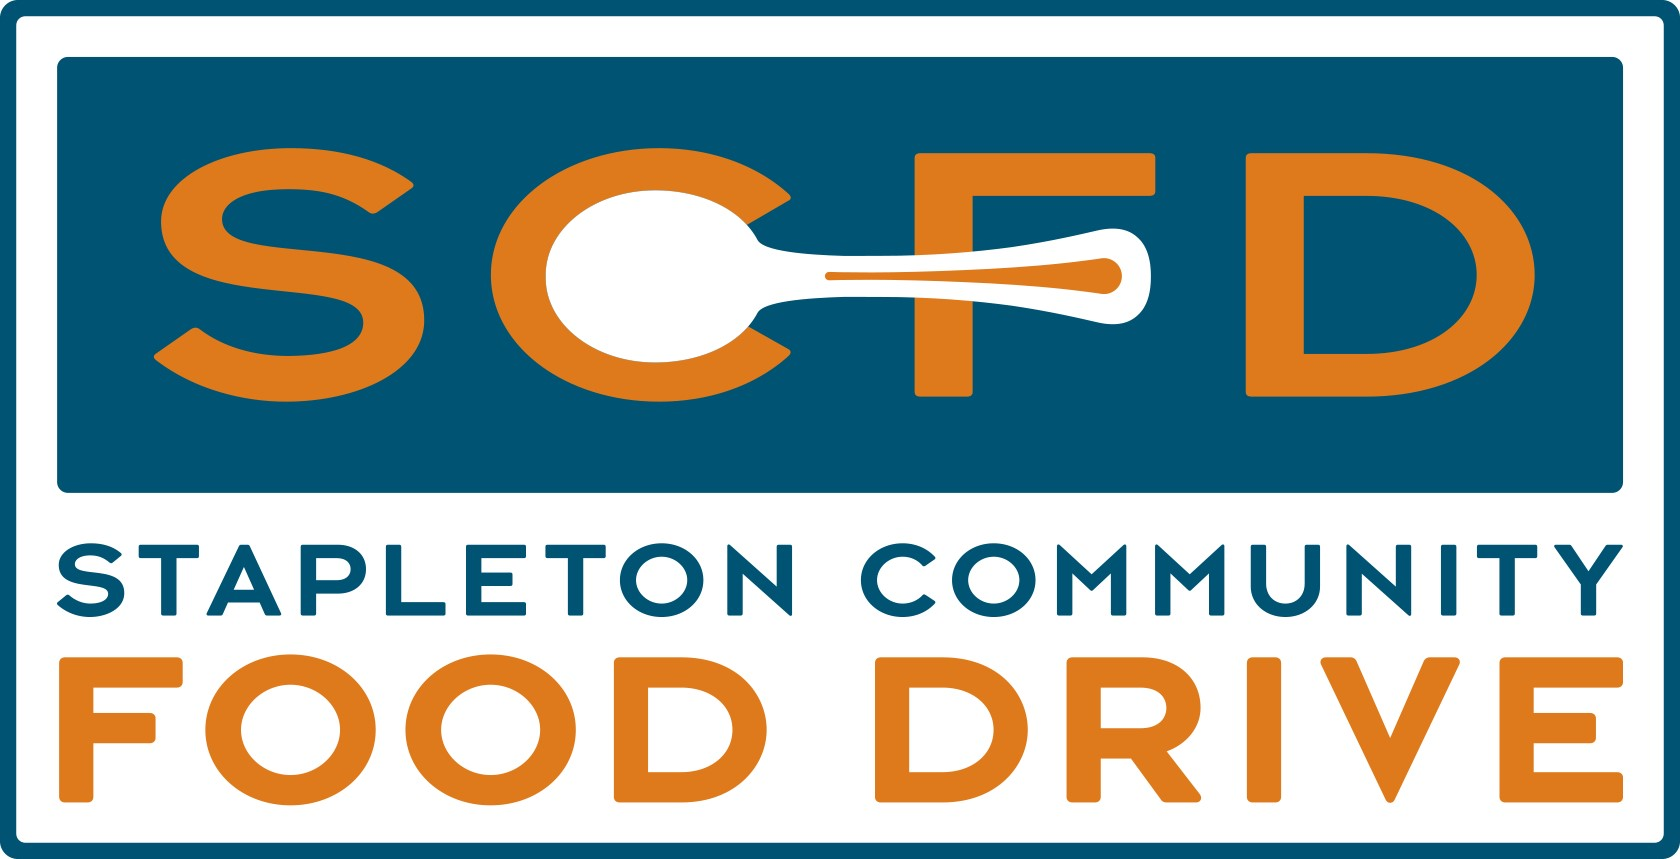 Stapleton Community Food Drive